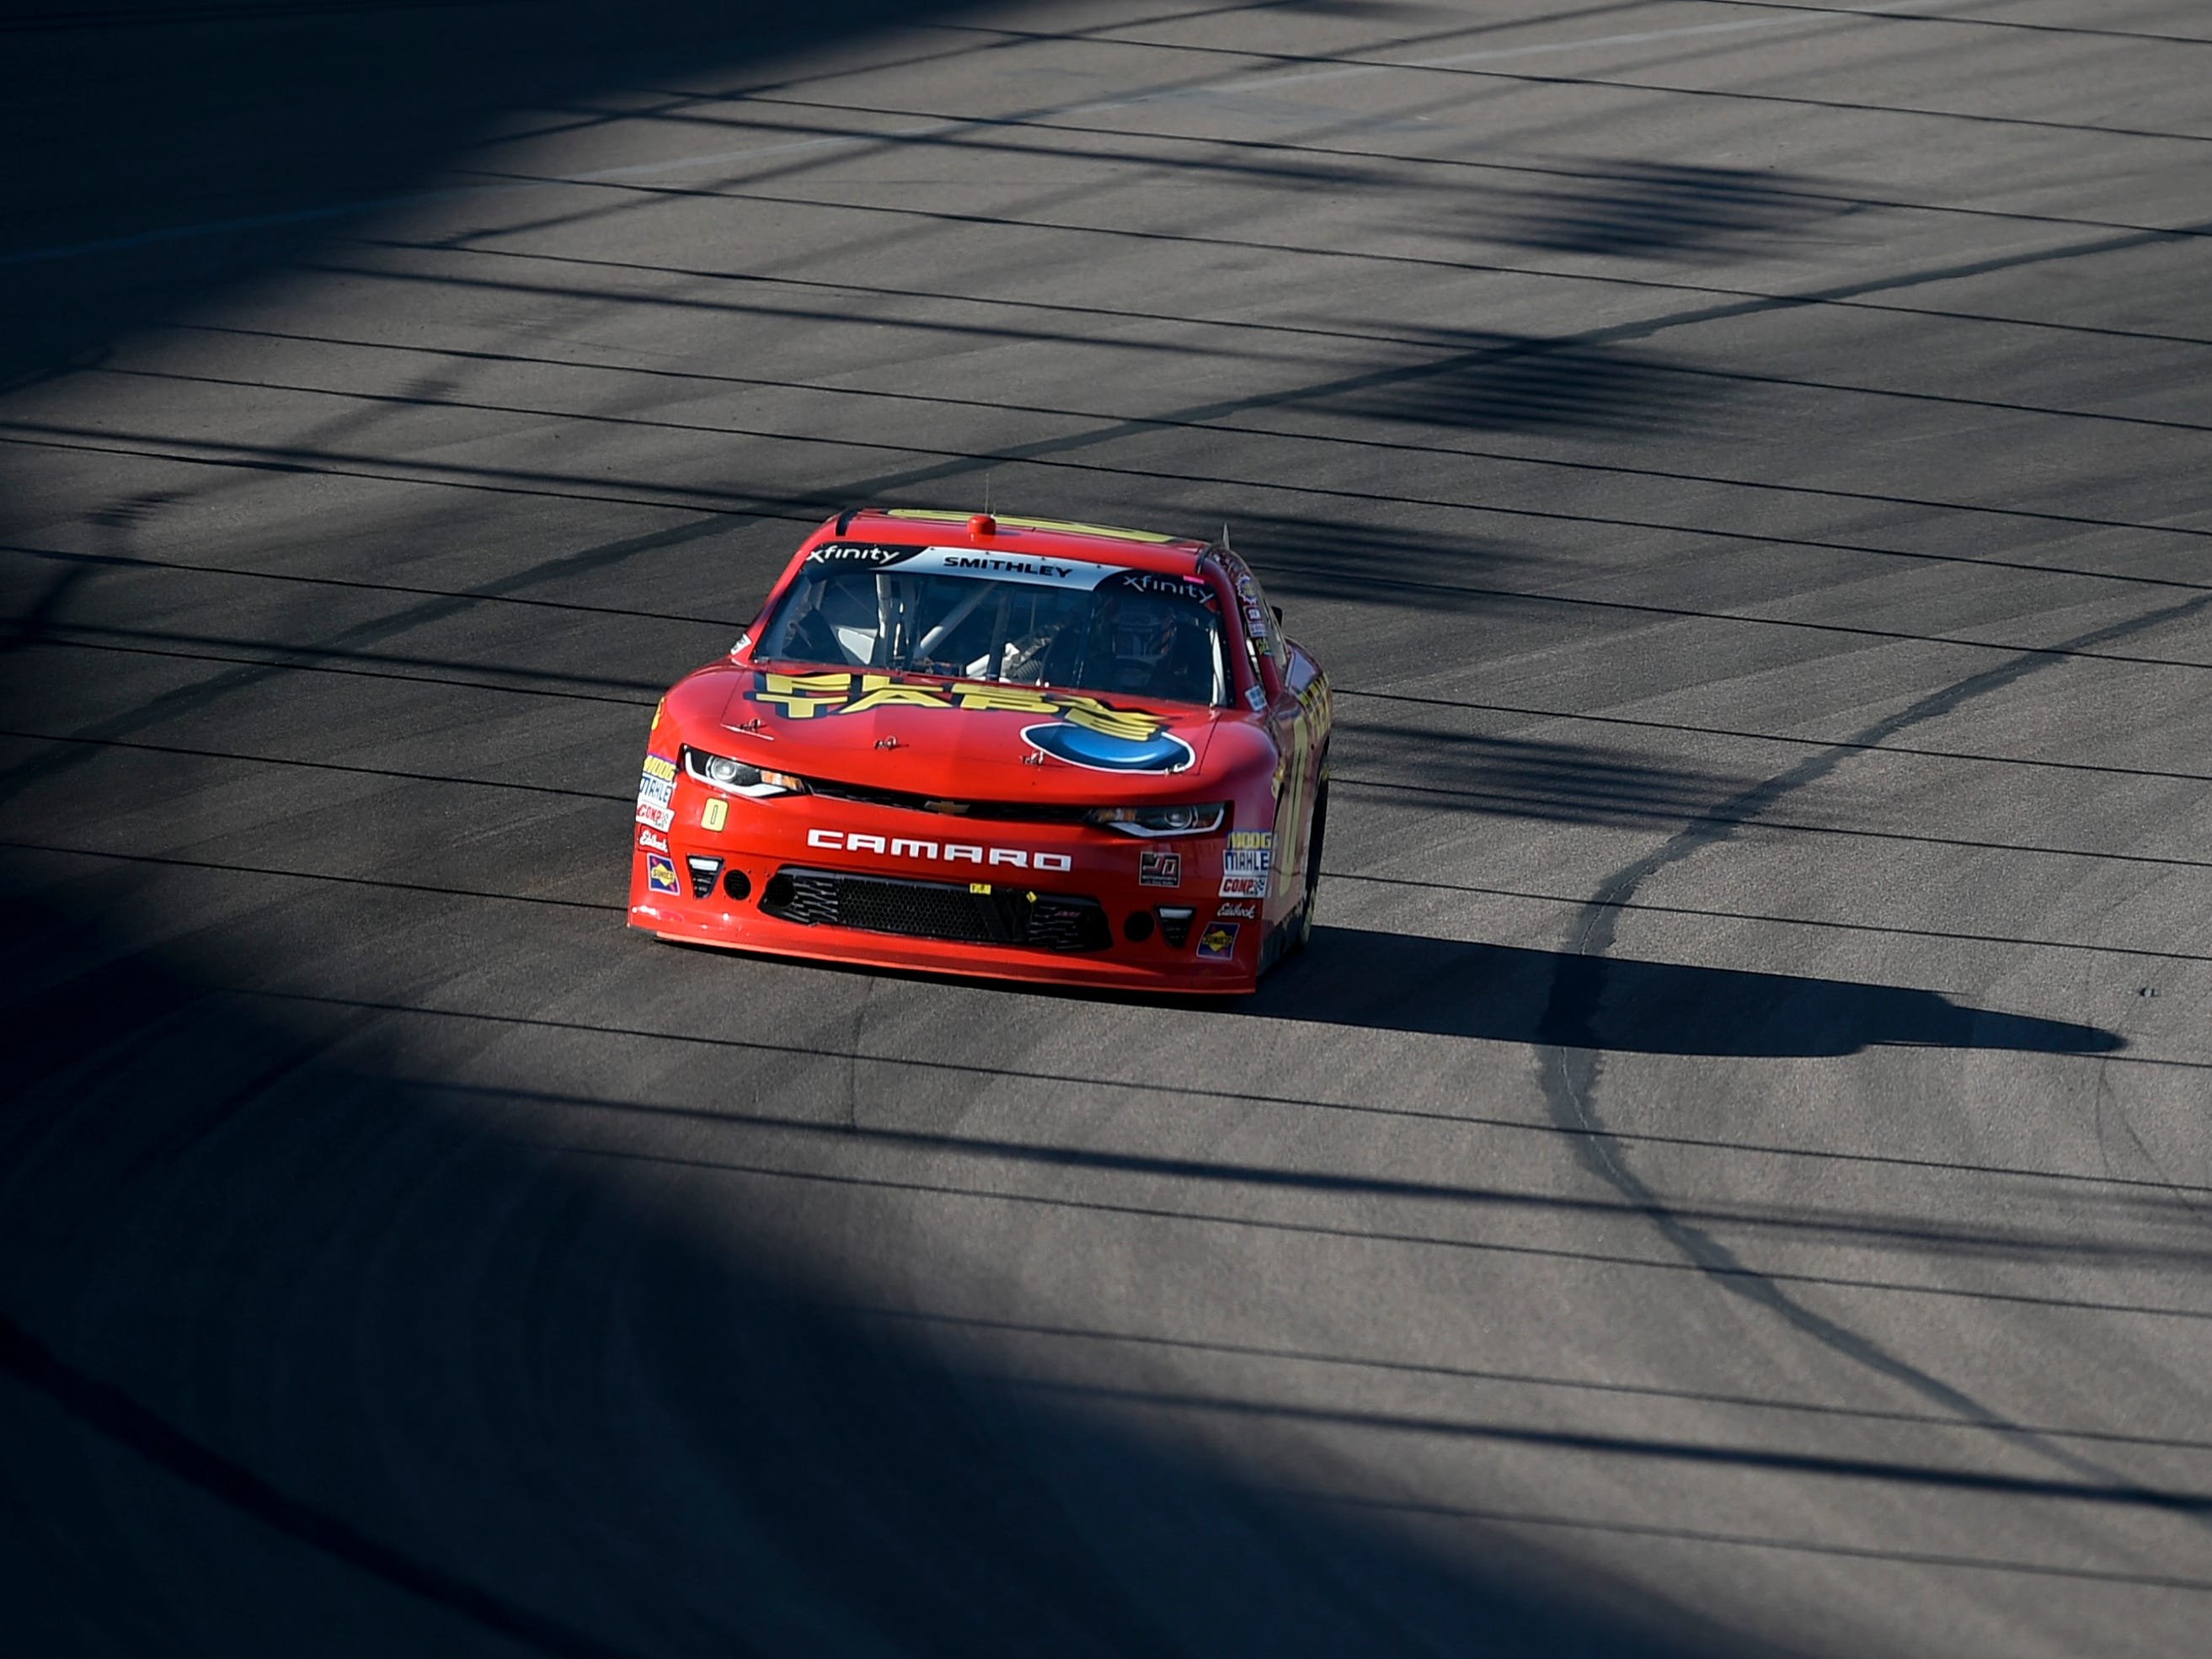 Nov 10, 2018; Avondale, AZ, USA; NASCAR Xfinity Series driver Justin Allgaier (7) during the NASCAR Xfinity Series Race at ISM Raceway. Mandatory Credit: Kelvin Kuo-USA TODAY Sports